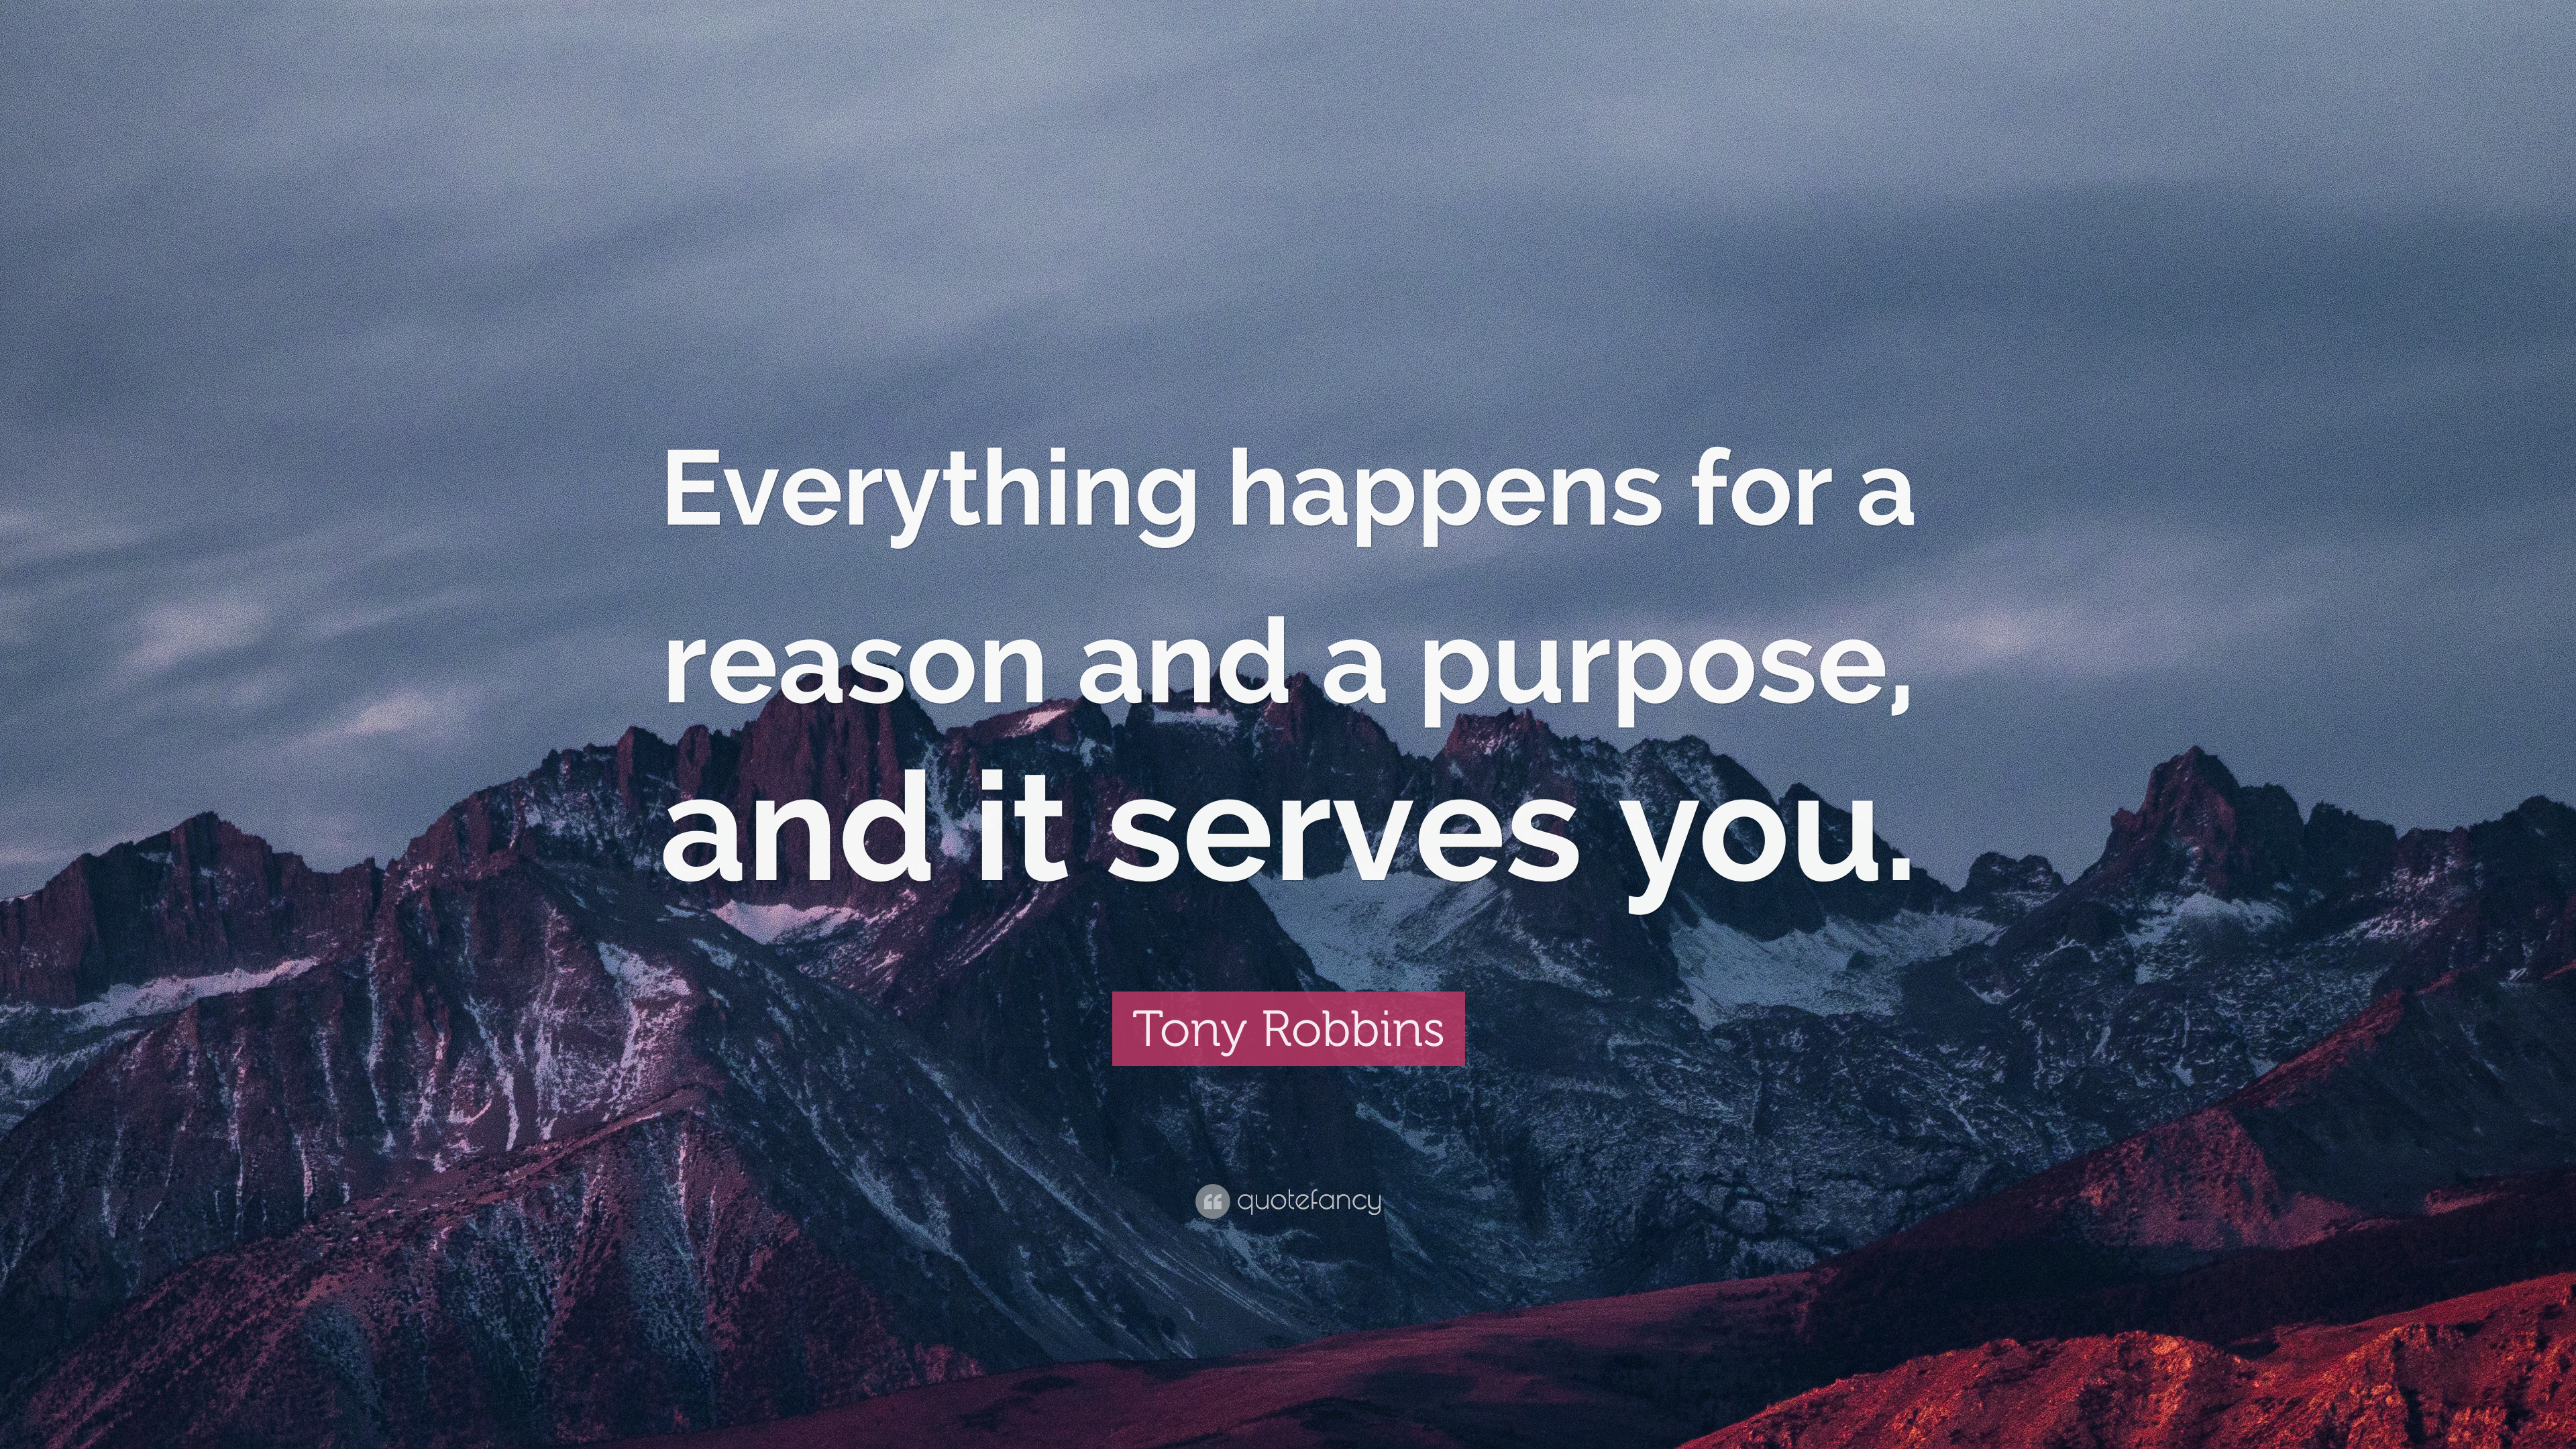 Tony Robbins Quote Everything Happens For A Reason And A Purpose